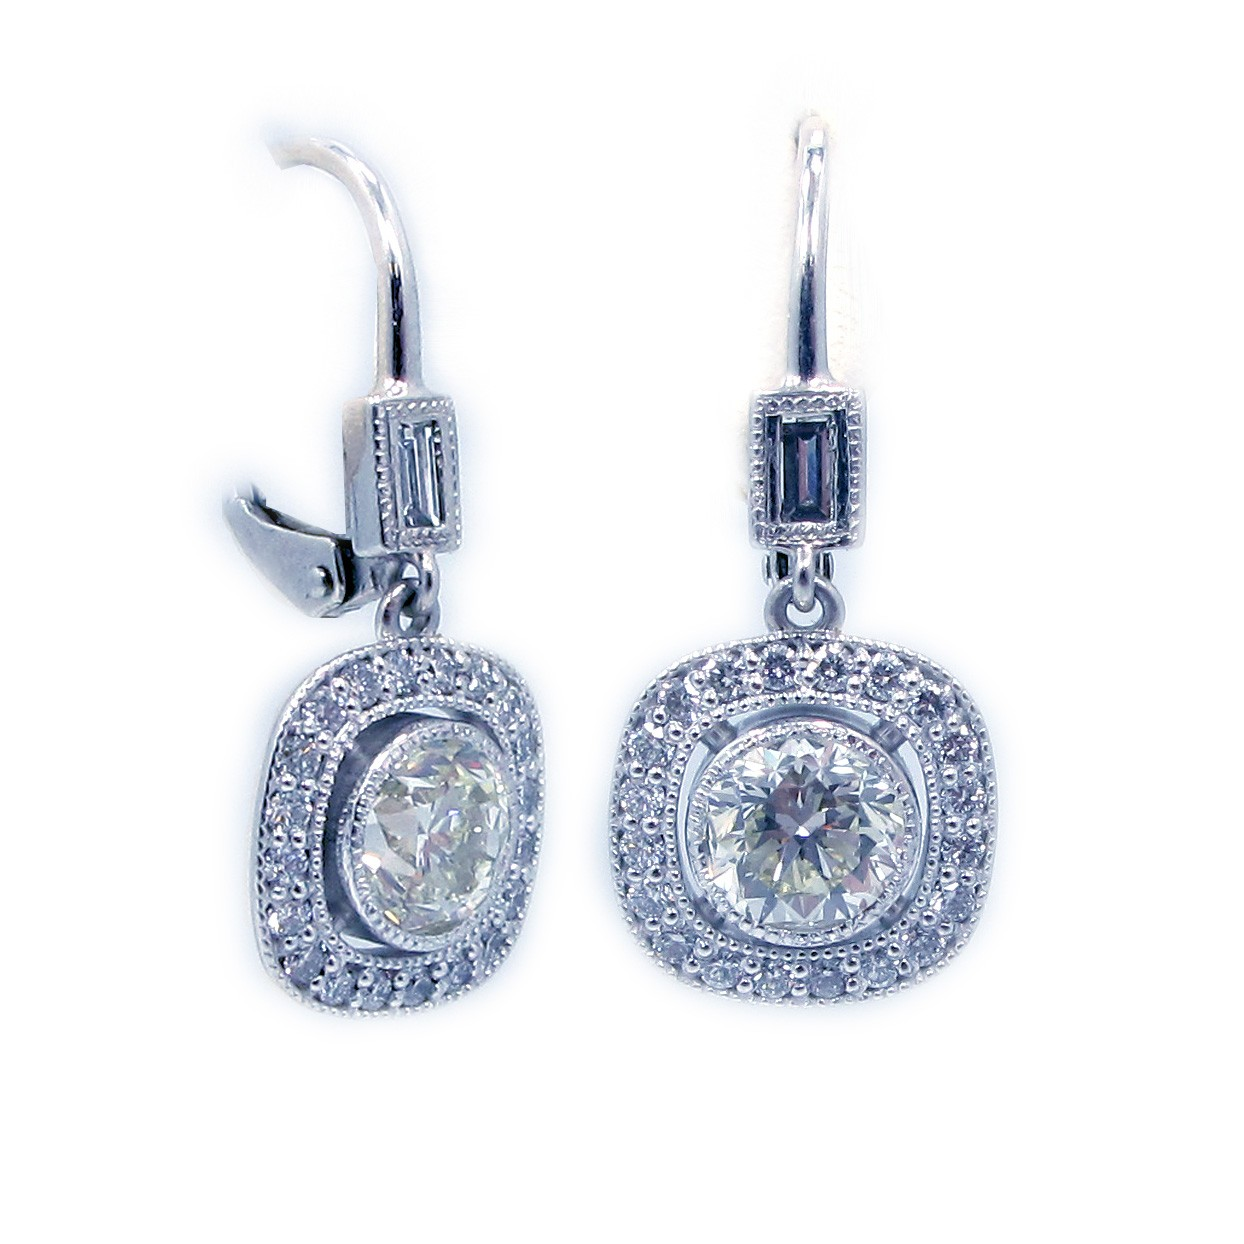 14k White Gold Diamond With Halo Earrings